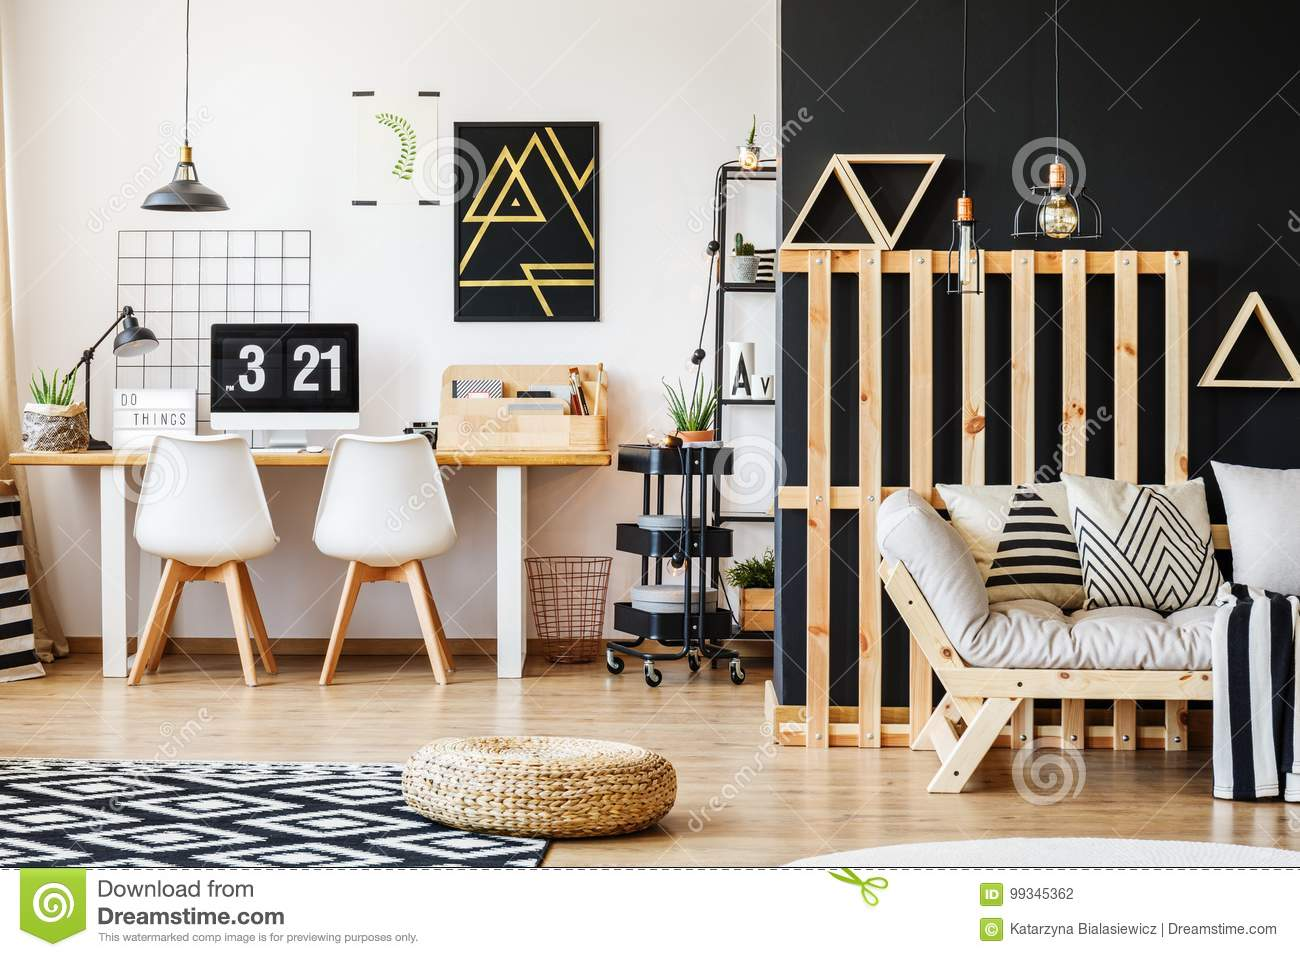 Big scandi desk designer chairs computer poster and rack in modern cozy room for a teenager with black and white interior design and wooden pallet decor